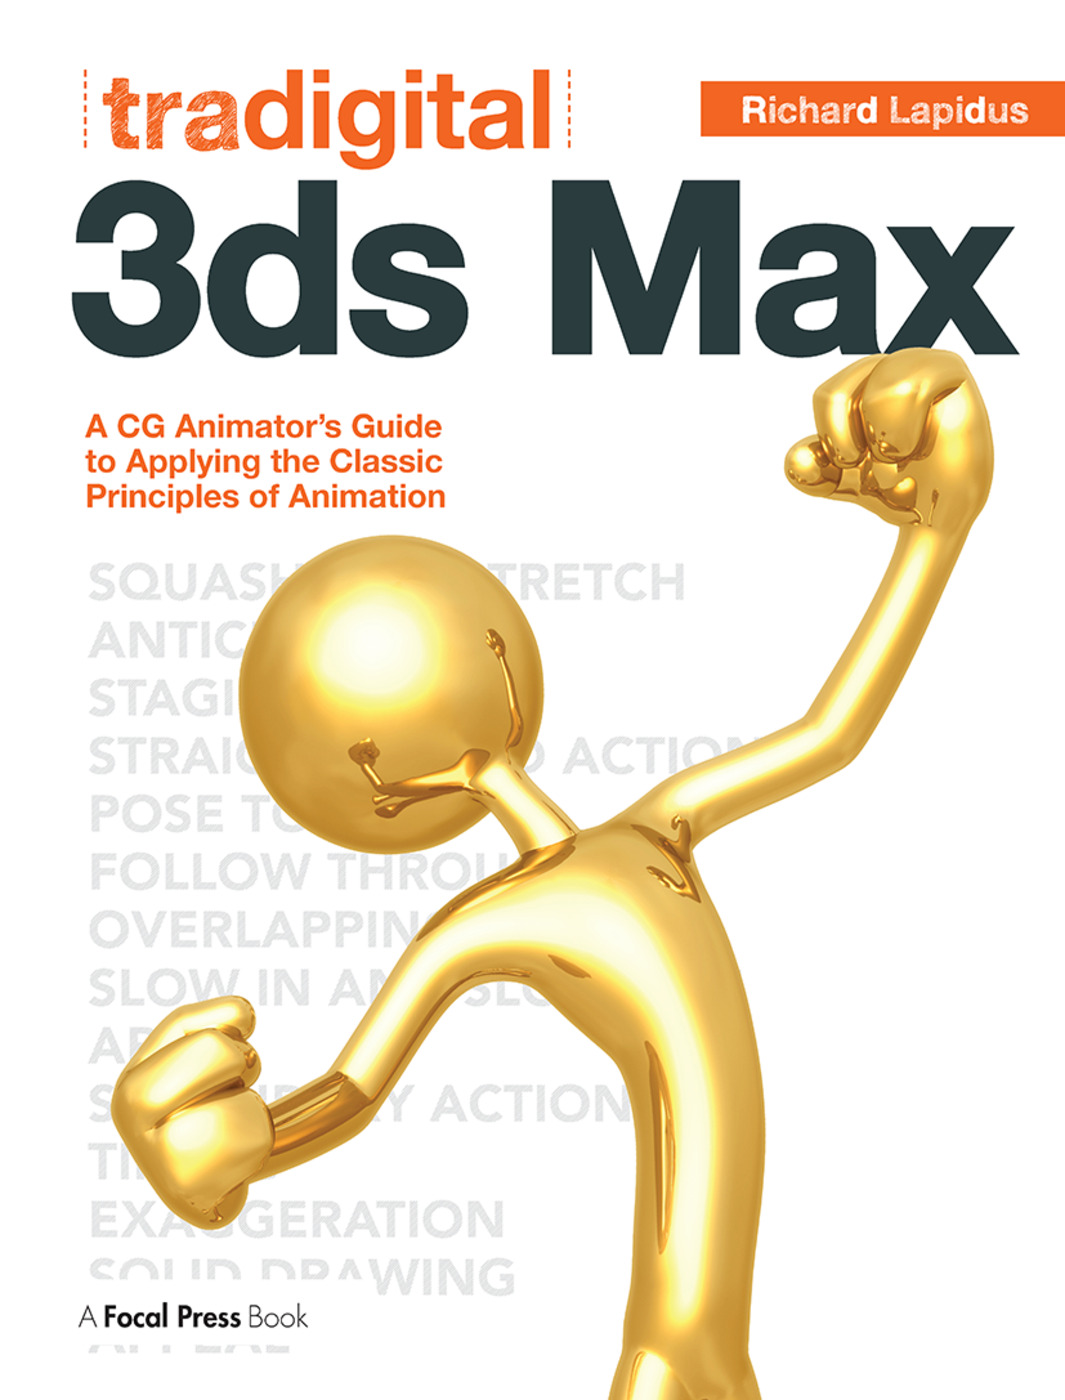 Tradigital 3ds Max: A CG Animator's Guide to Applying the Classic Principles of Animation book cover